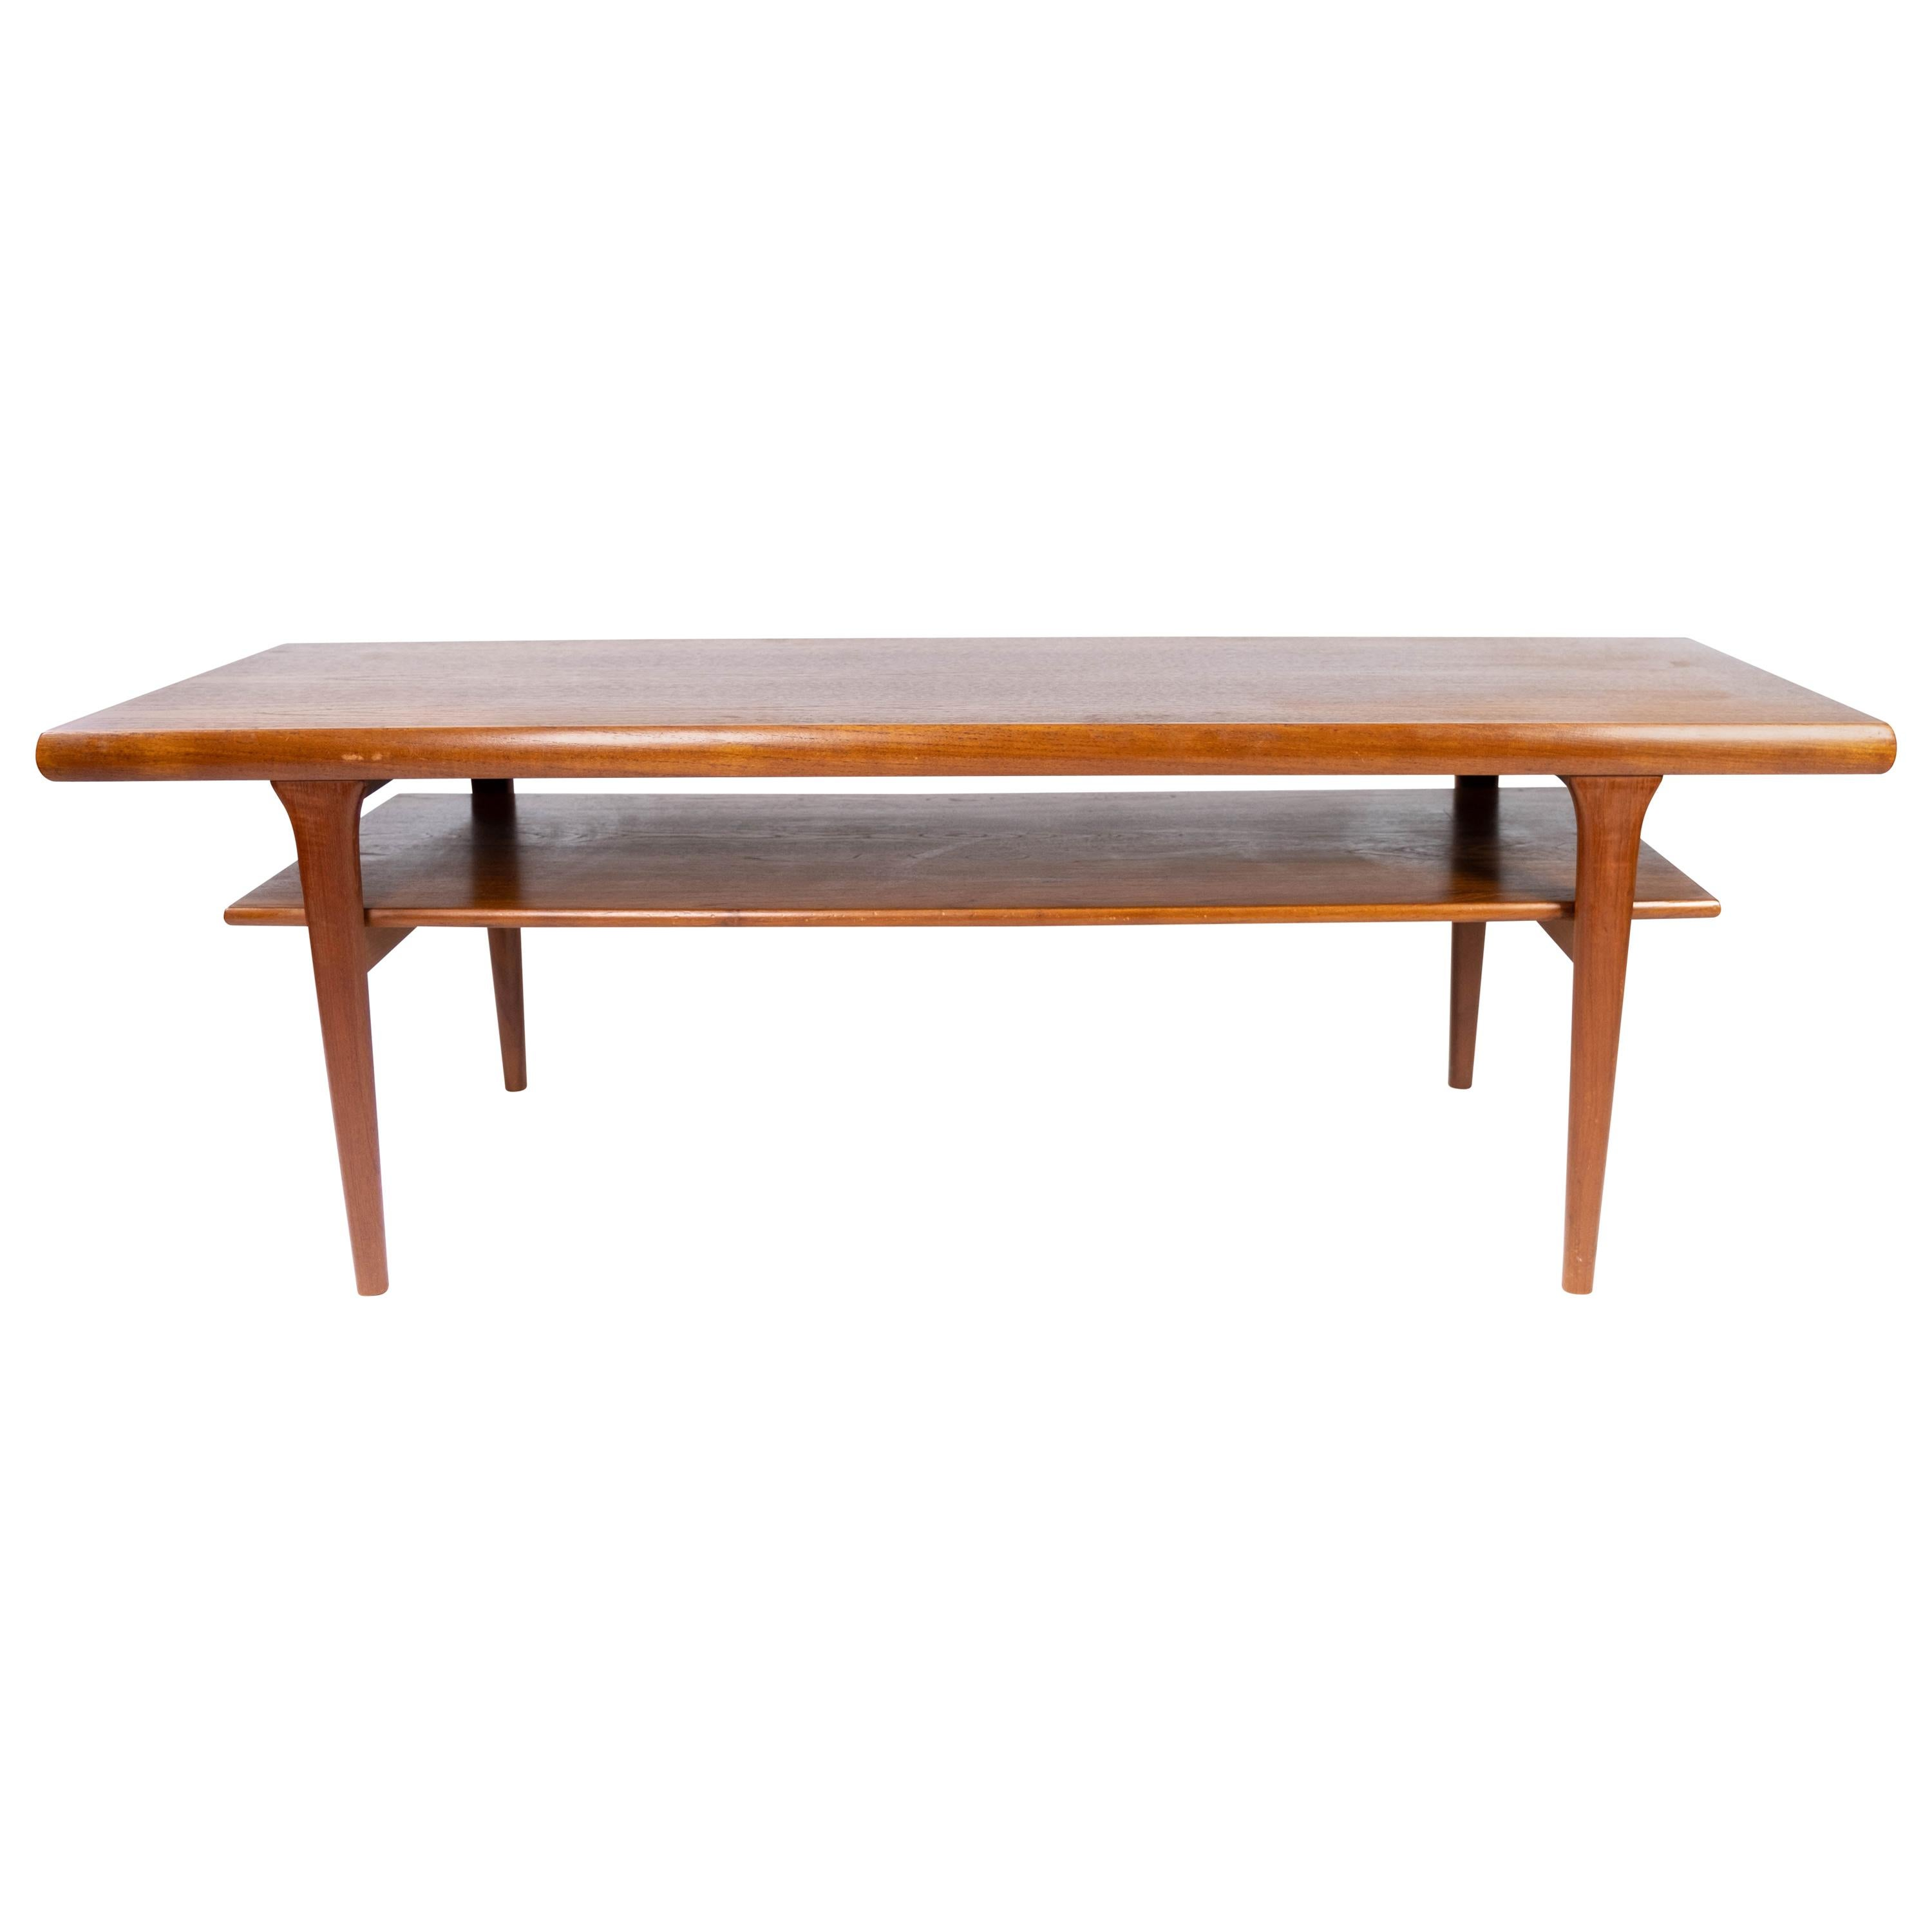 Coffee Table with Shelf in Teak of Danish Design from the 1960s